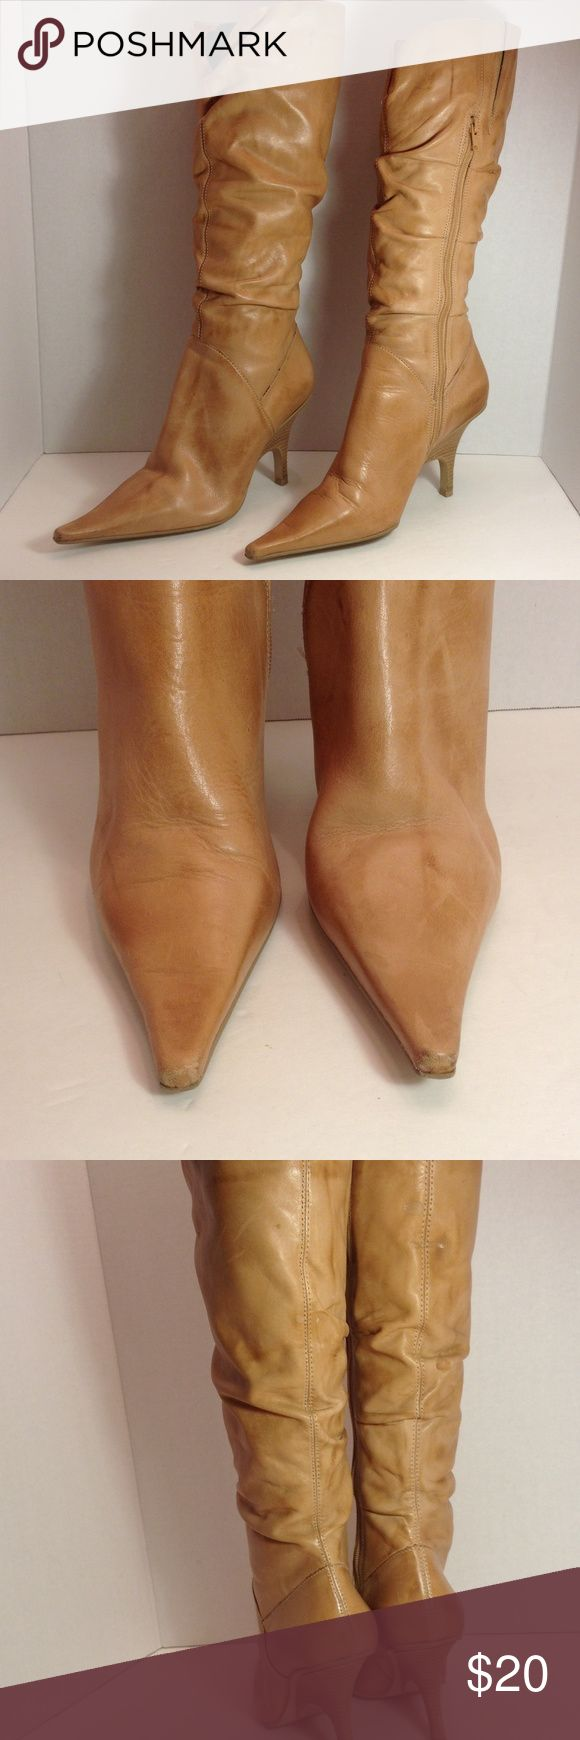 """Bakers distress leather boots Nice tan leather boots with zipper side, 3.5"""" heels, boots show light wear on toe area. 17"""" tall Bakers Shoes Heeled Boots"""